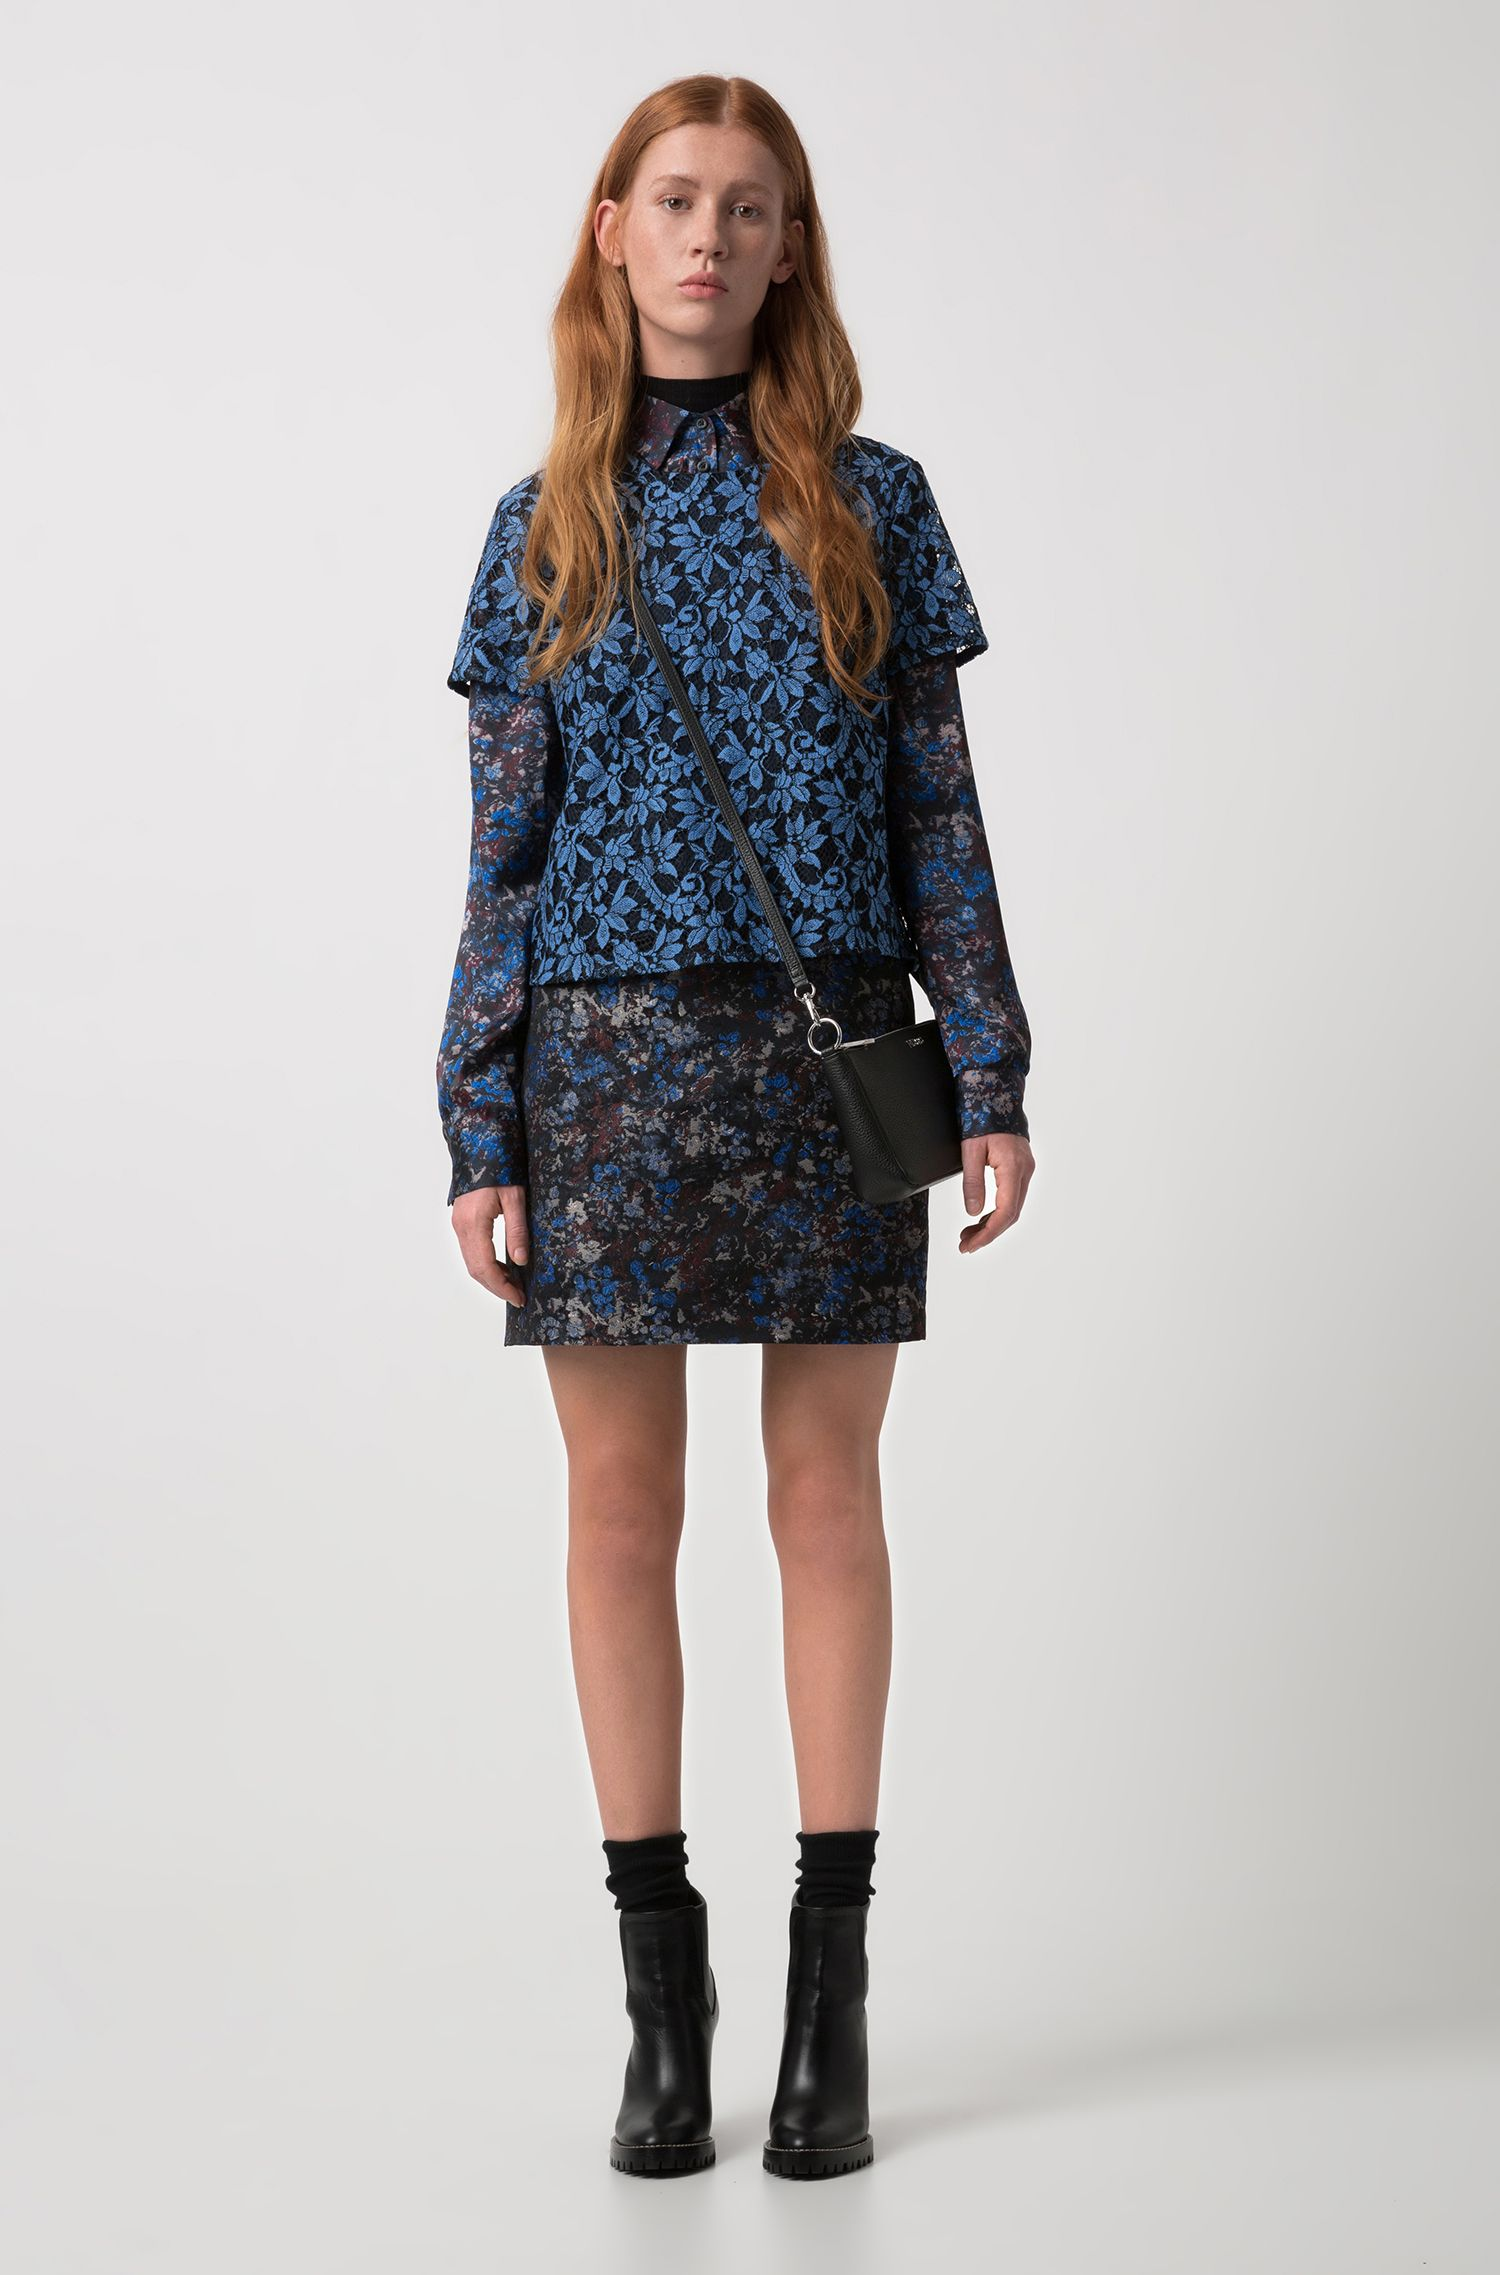 Pencil miniskirt in floral camouflage jacquard, Patterned